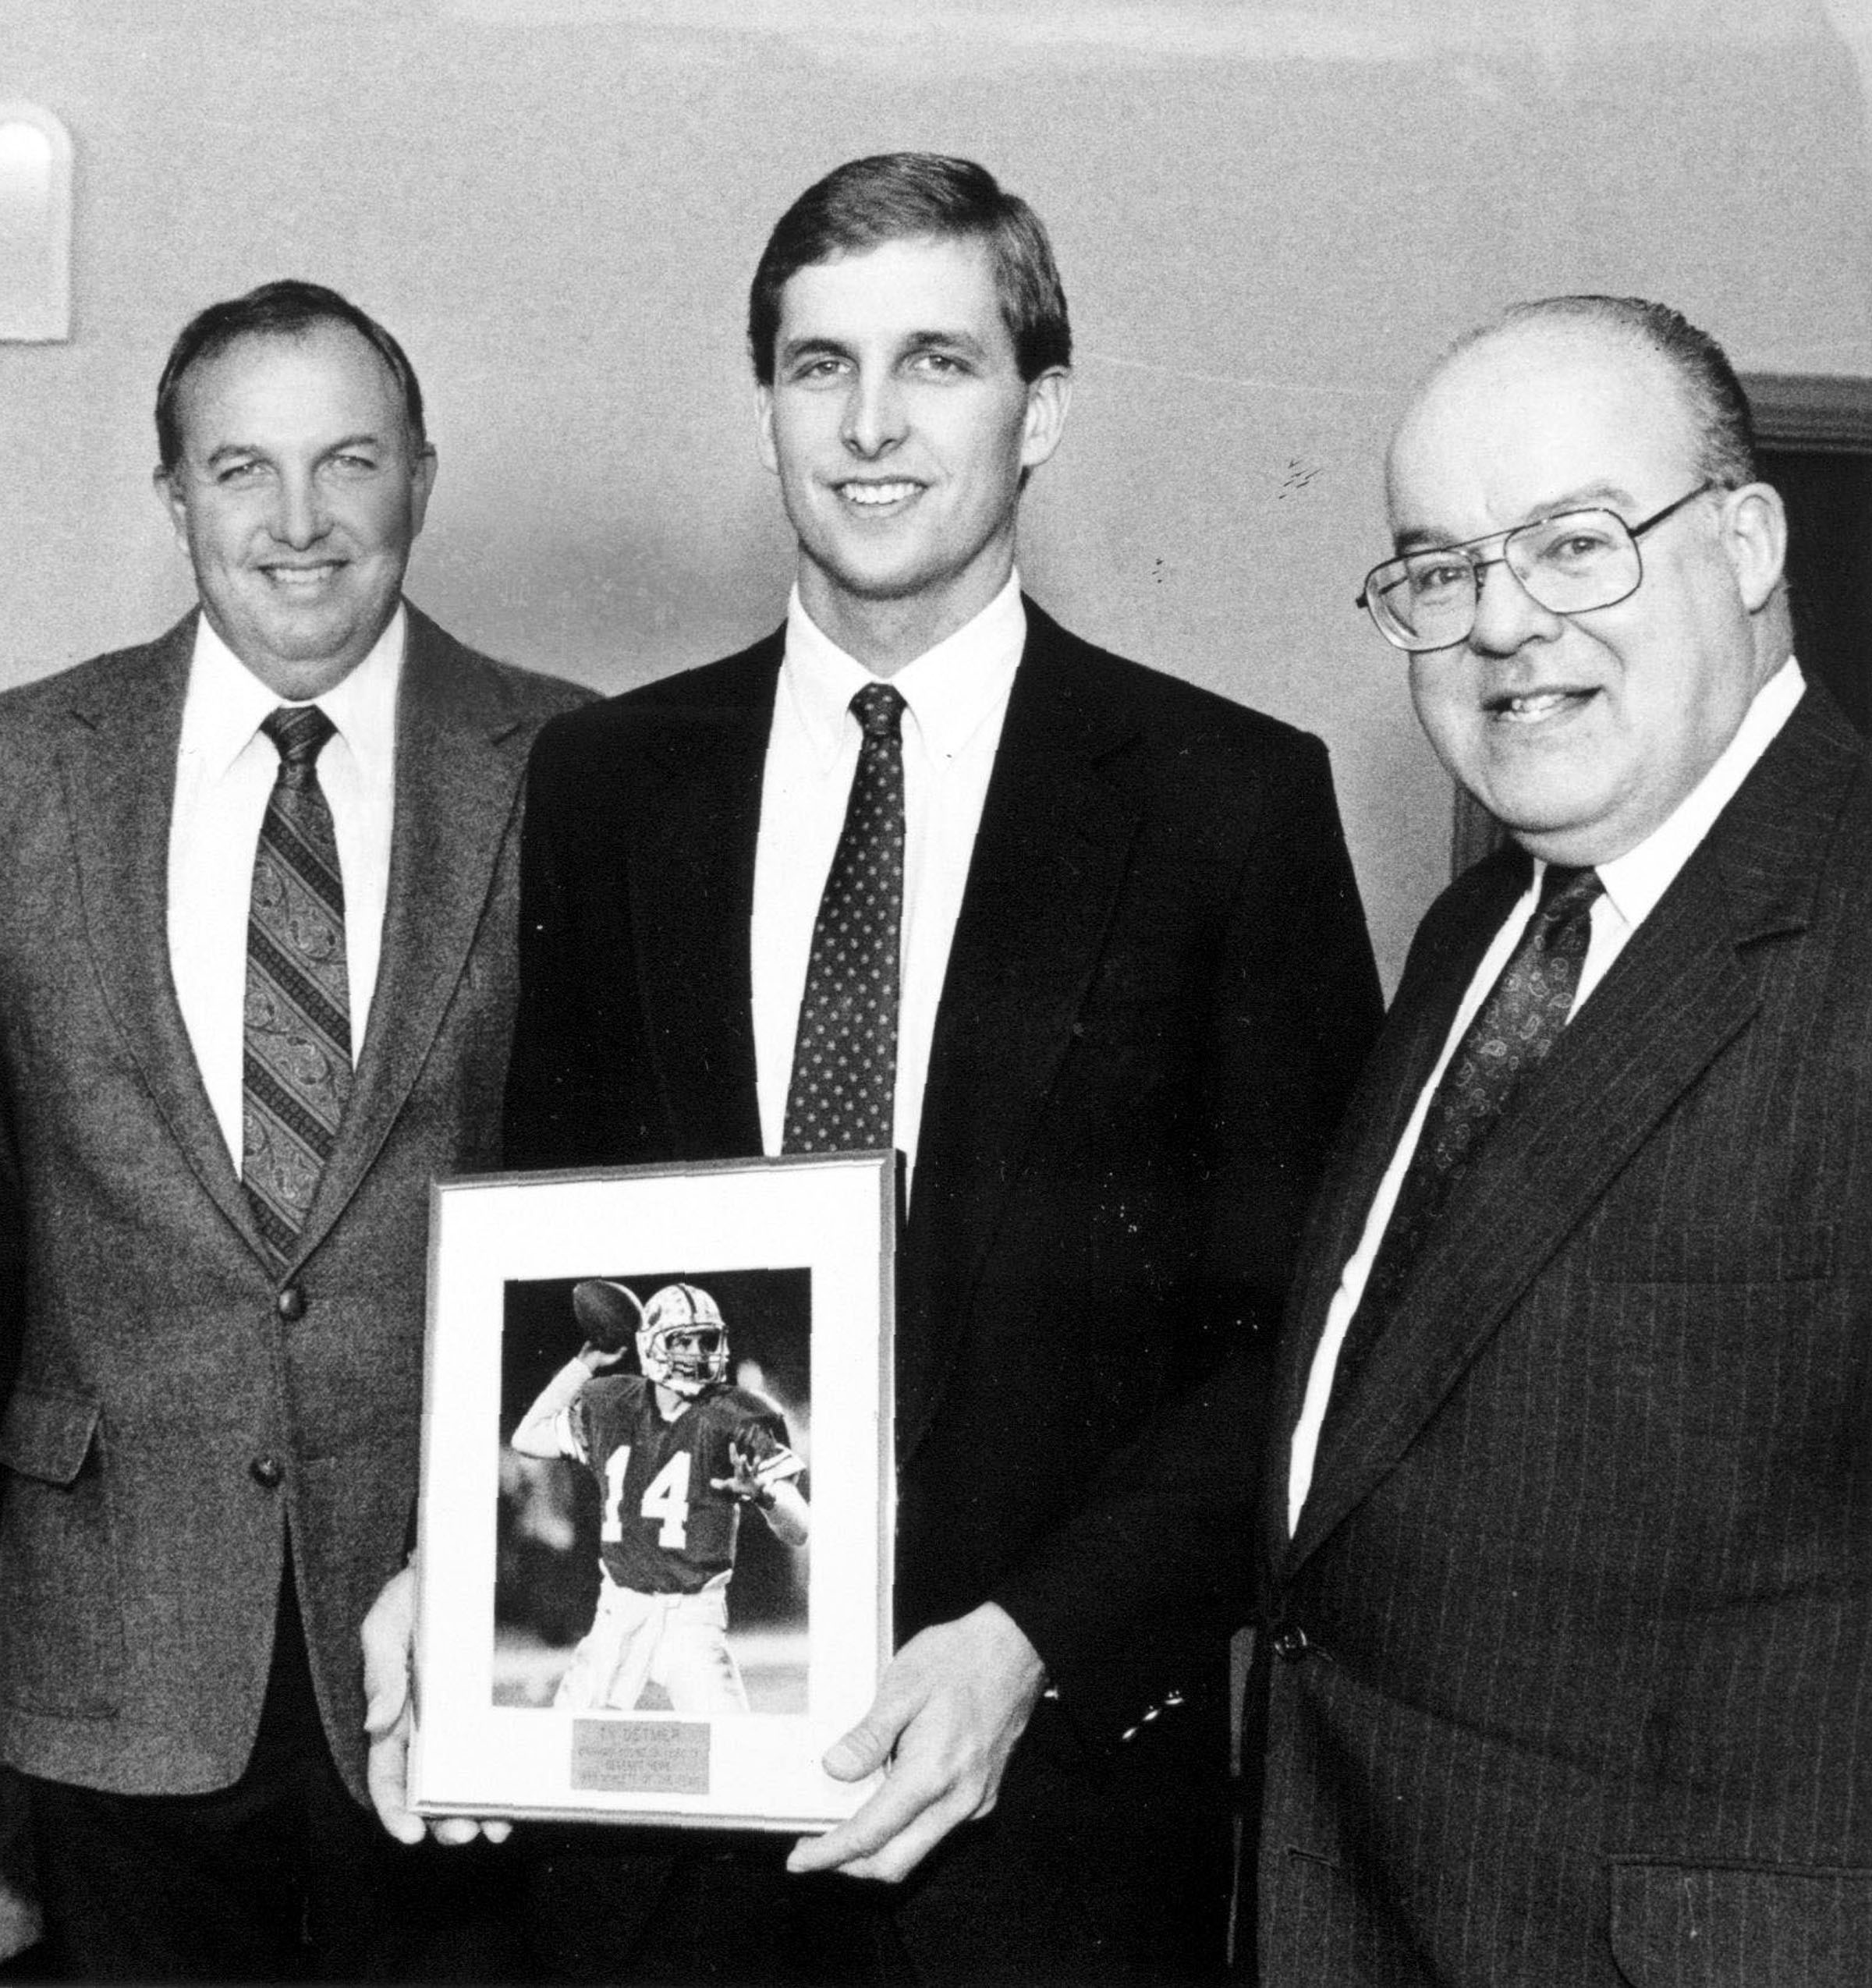 BYU Quarterbacks online photo gallery Ty Detmer, flanked by his father Sonny, left, plays the 1989 Deseret News' Athlete of the Year award he received from publisher William James Mortimer, right, during a luncheon in Detmer's honor in Provo. March 17, 1990. Sonny Detmer passed away Tuesday at the age of 76.